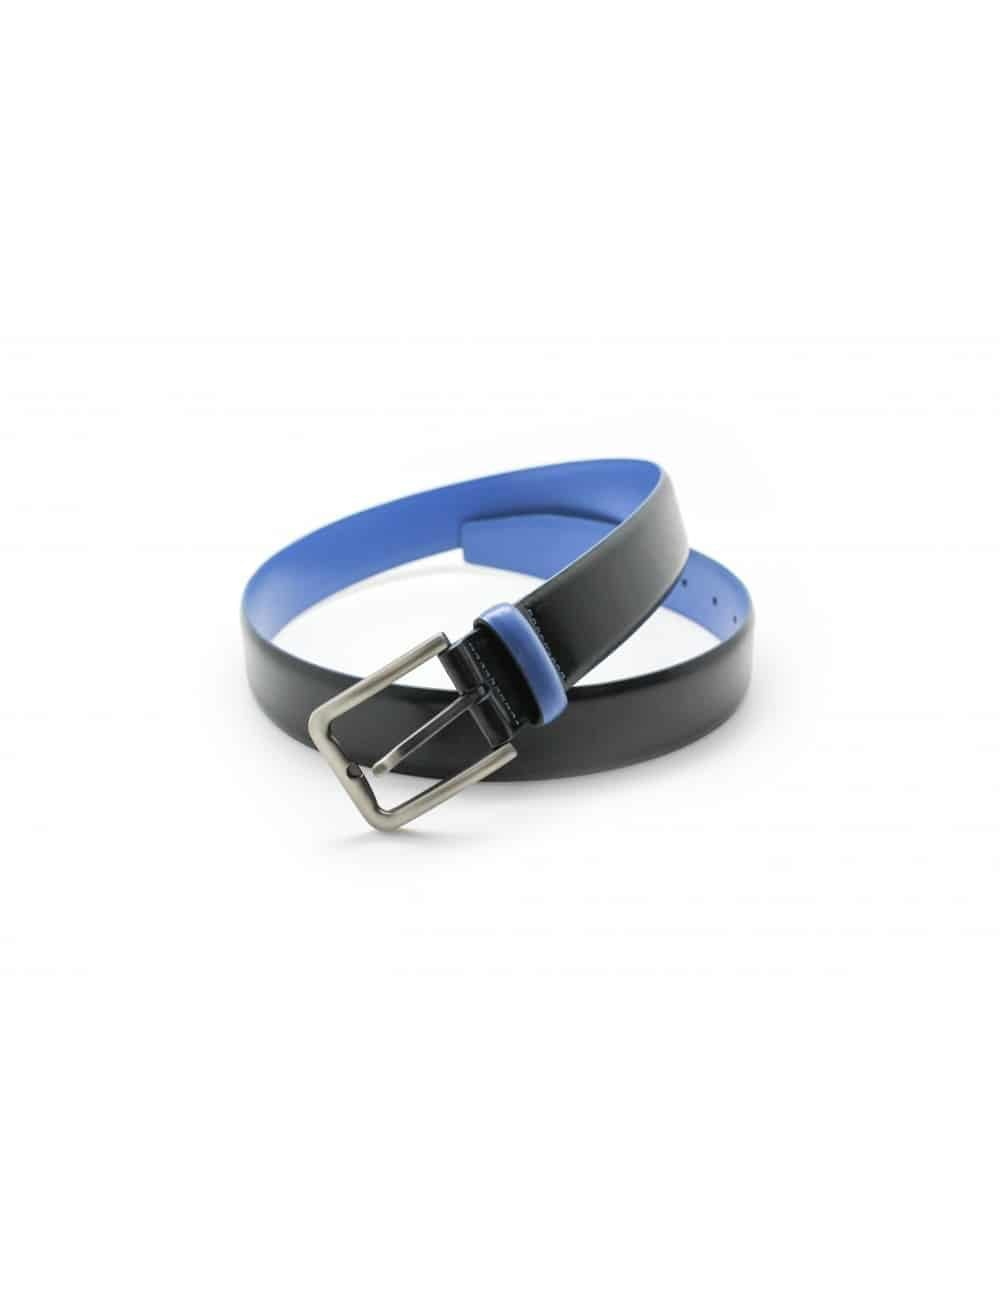 Navy & Blue Leather Belt LB3.5